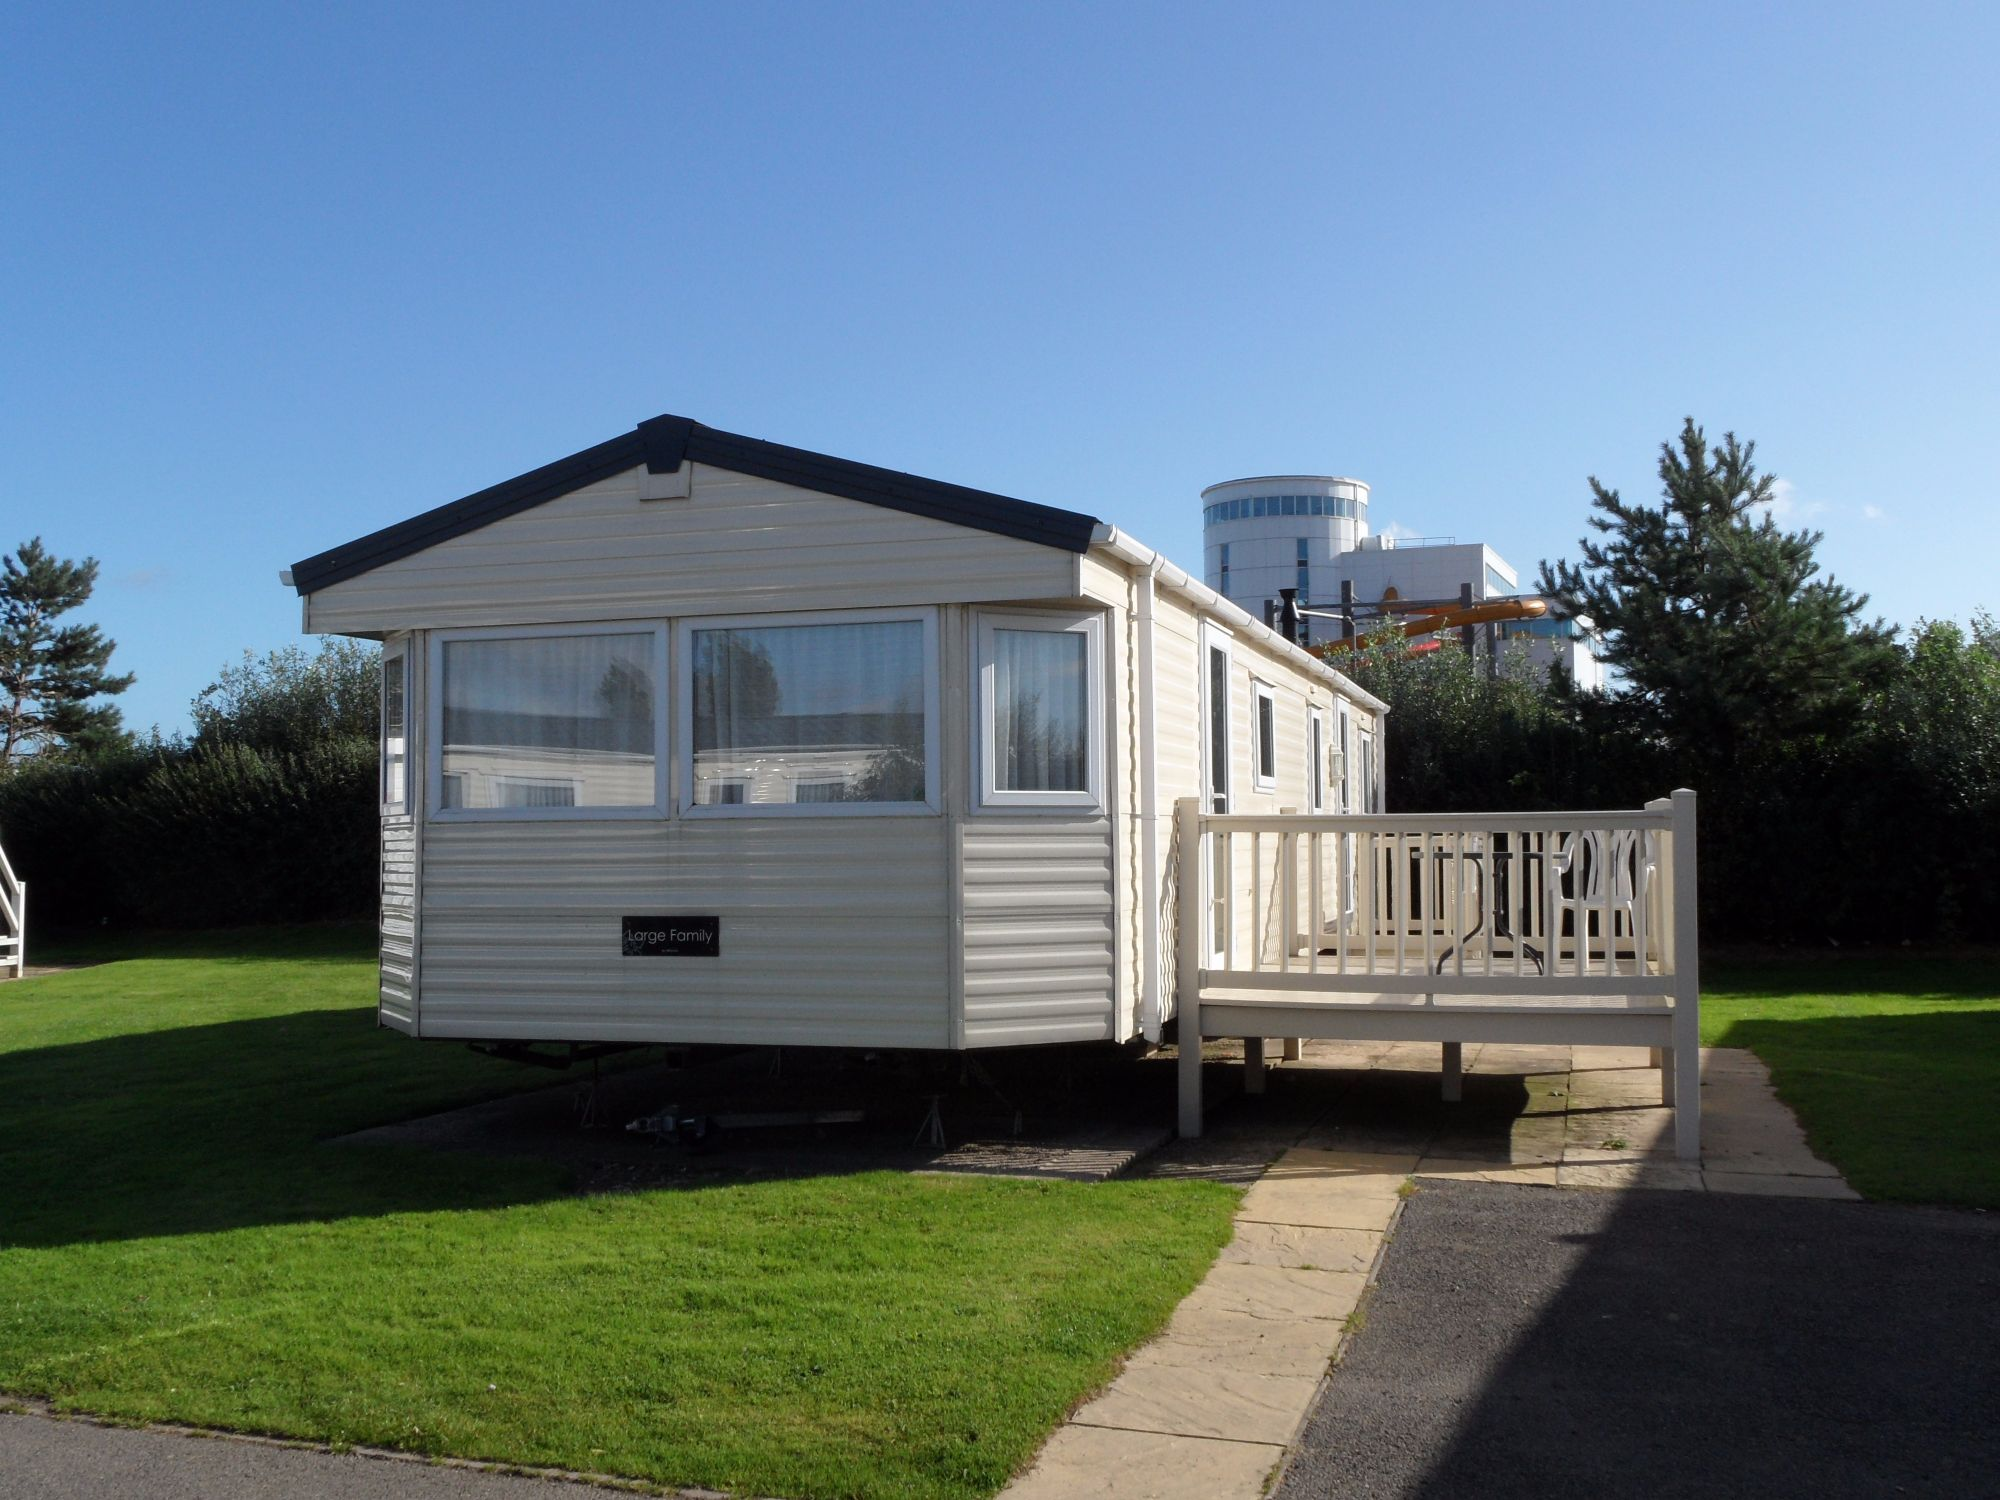 4 Bedroom, 10 Berth Skegness Butlins Caravans